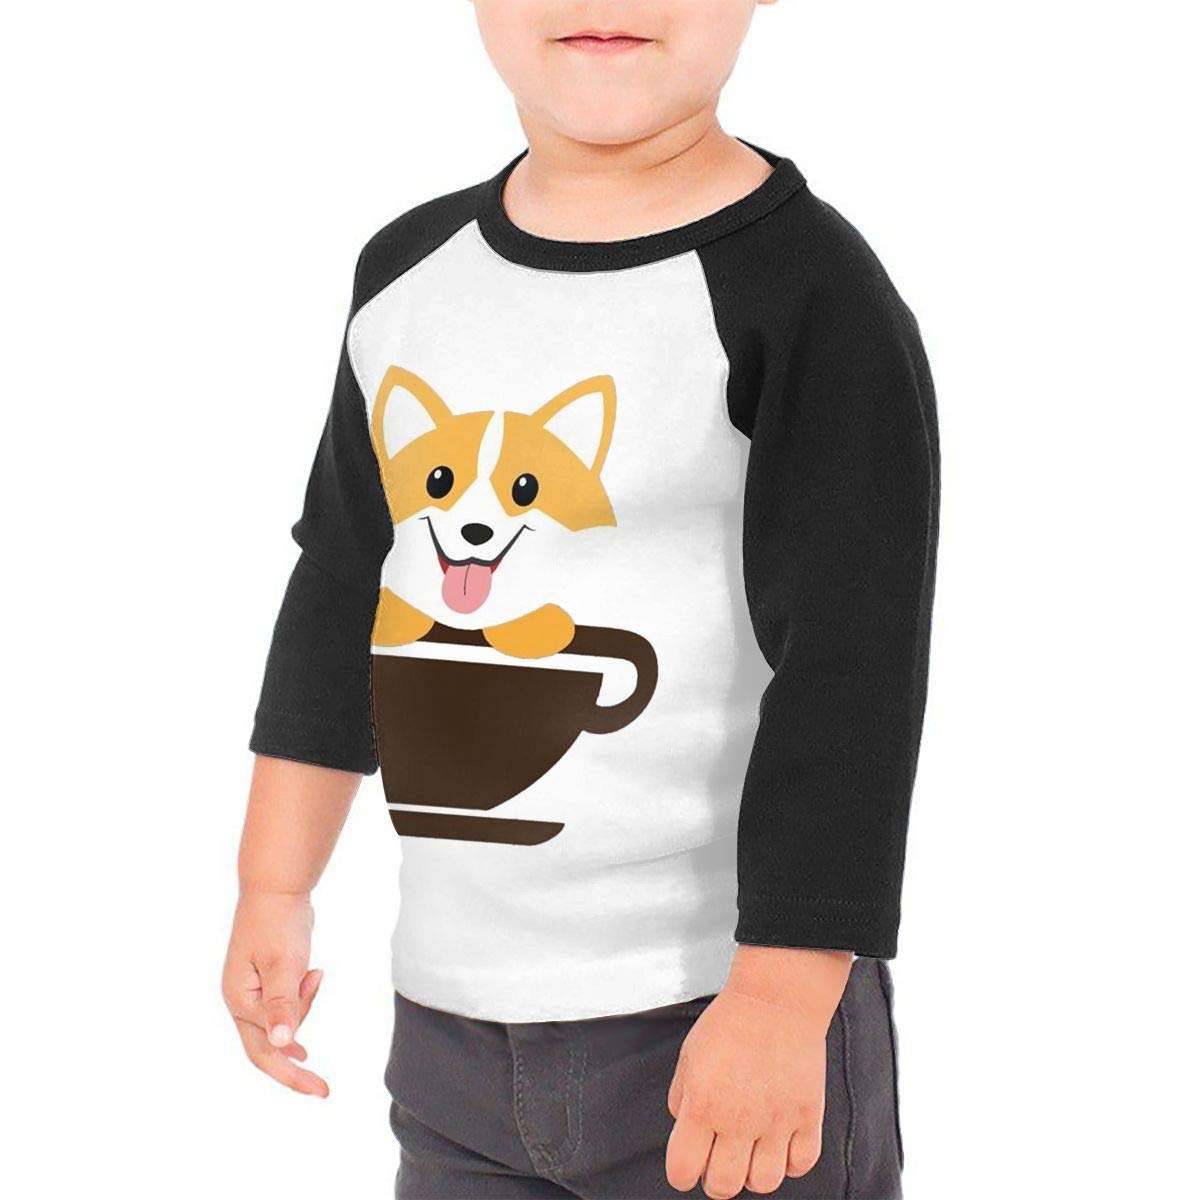 Corgi Dog Coffee Paw Teacups Unisex Toddler Baseball Jersey Contrast 3//4 Sleeves Tee